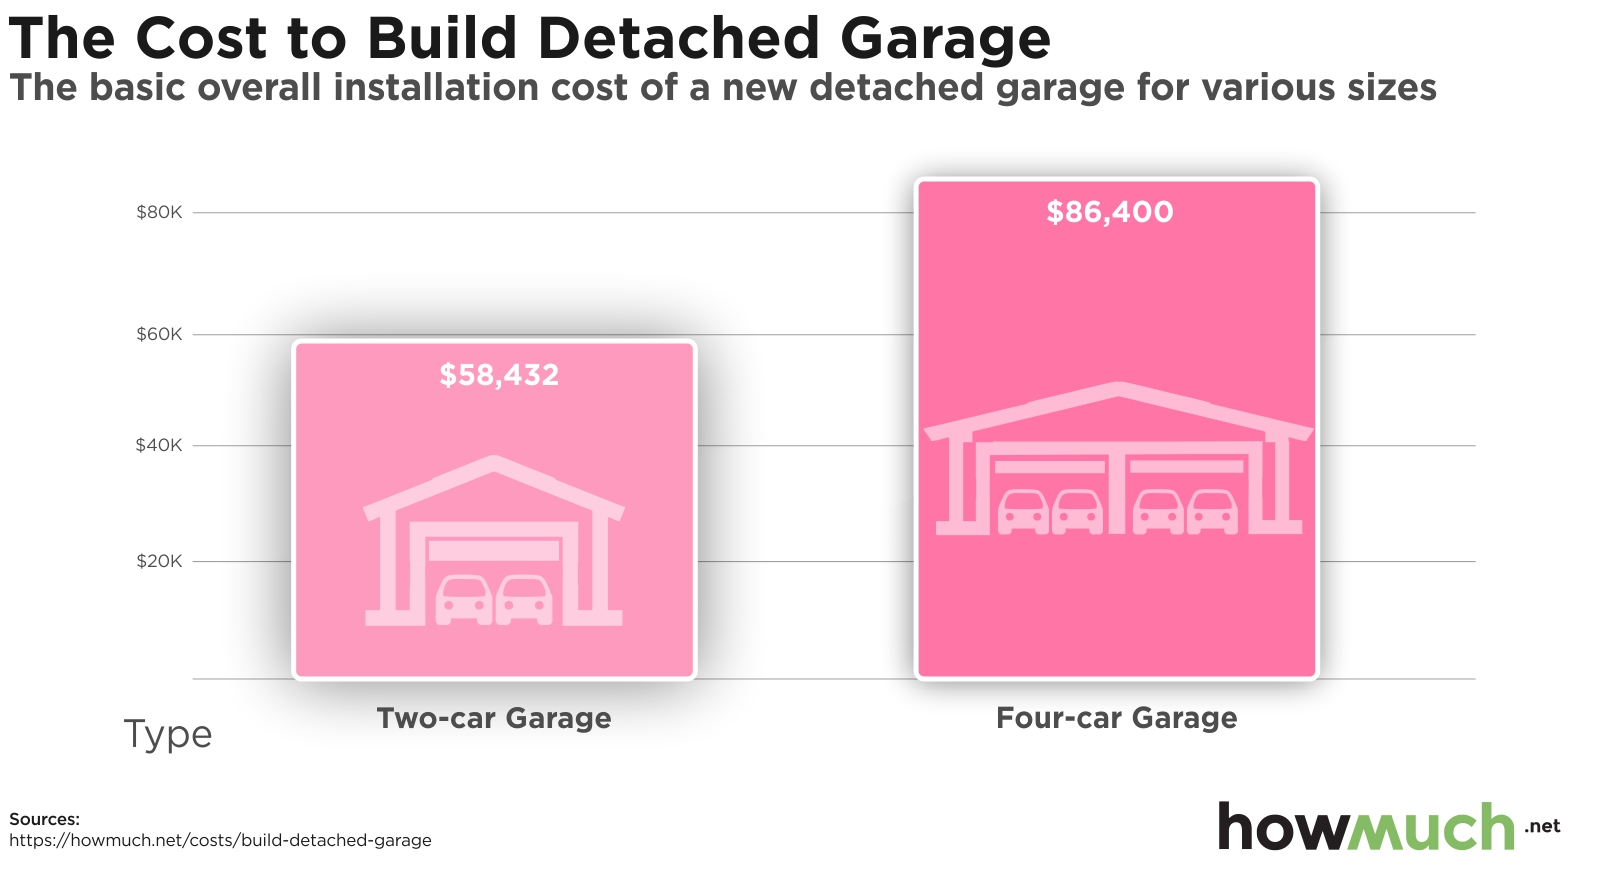 The Cost to Build Detached Garage